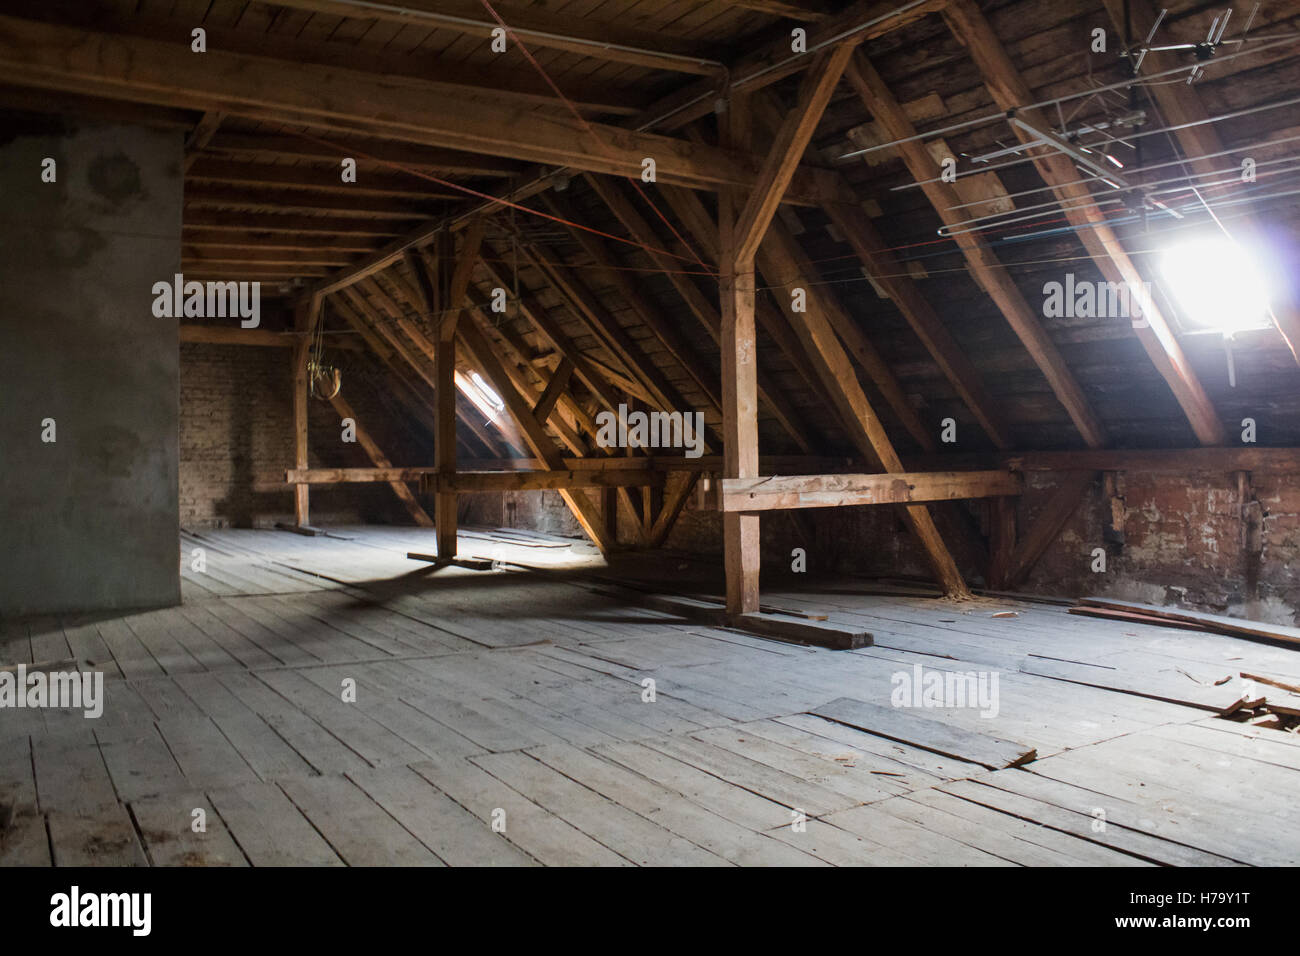 attic, wooden beams in old loft /  roof before construction - Stock Image